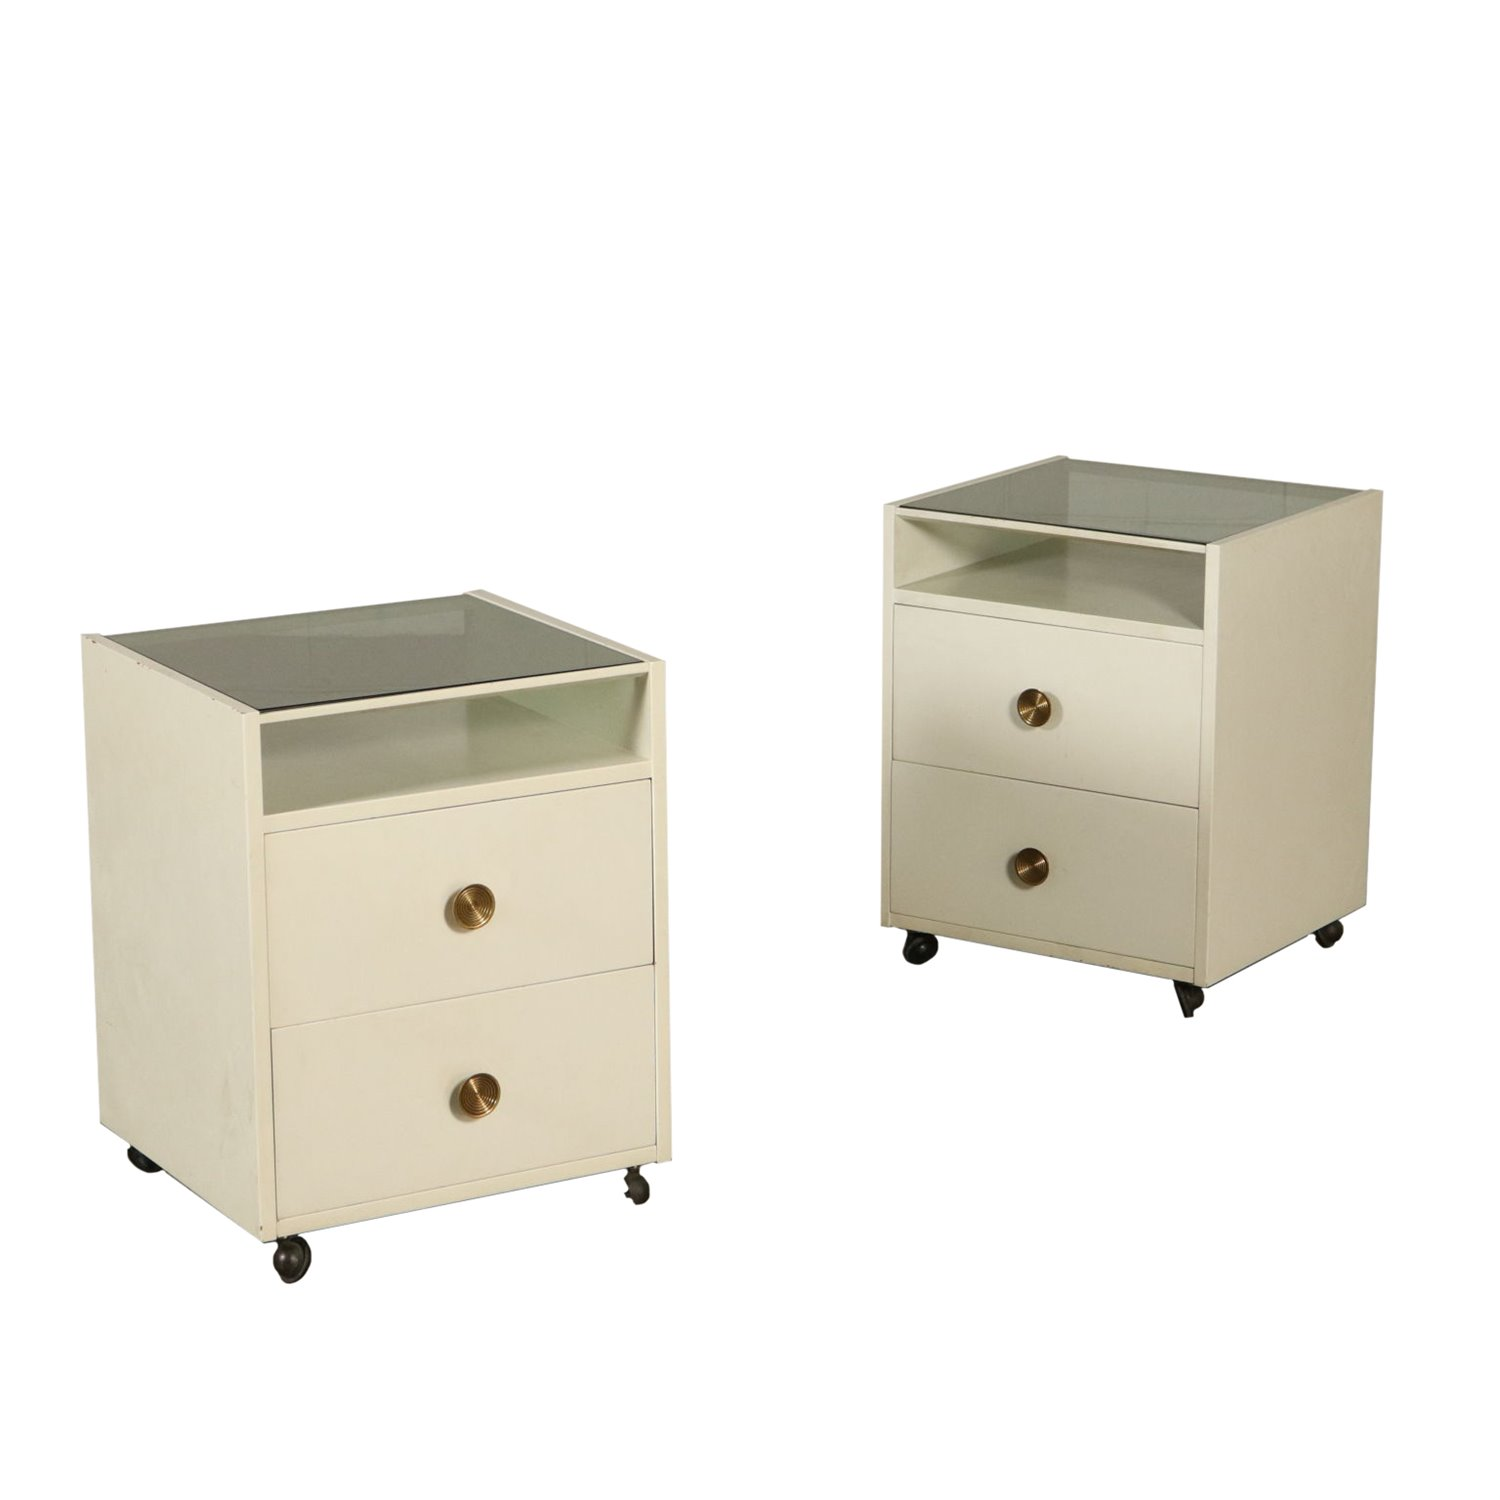 Pair Of Nightstands With Wheels By De Carli For Sormani Wood Glass 60s